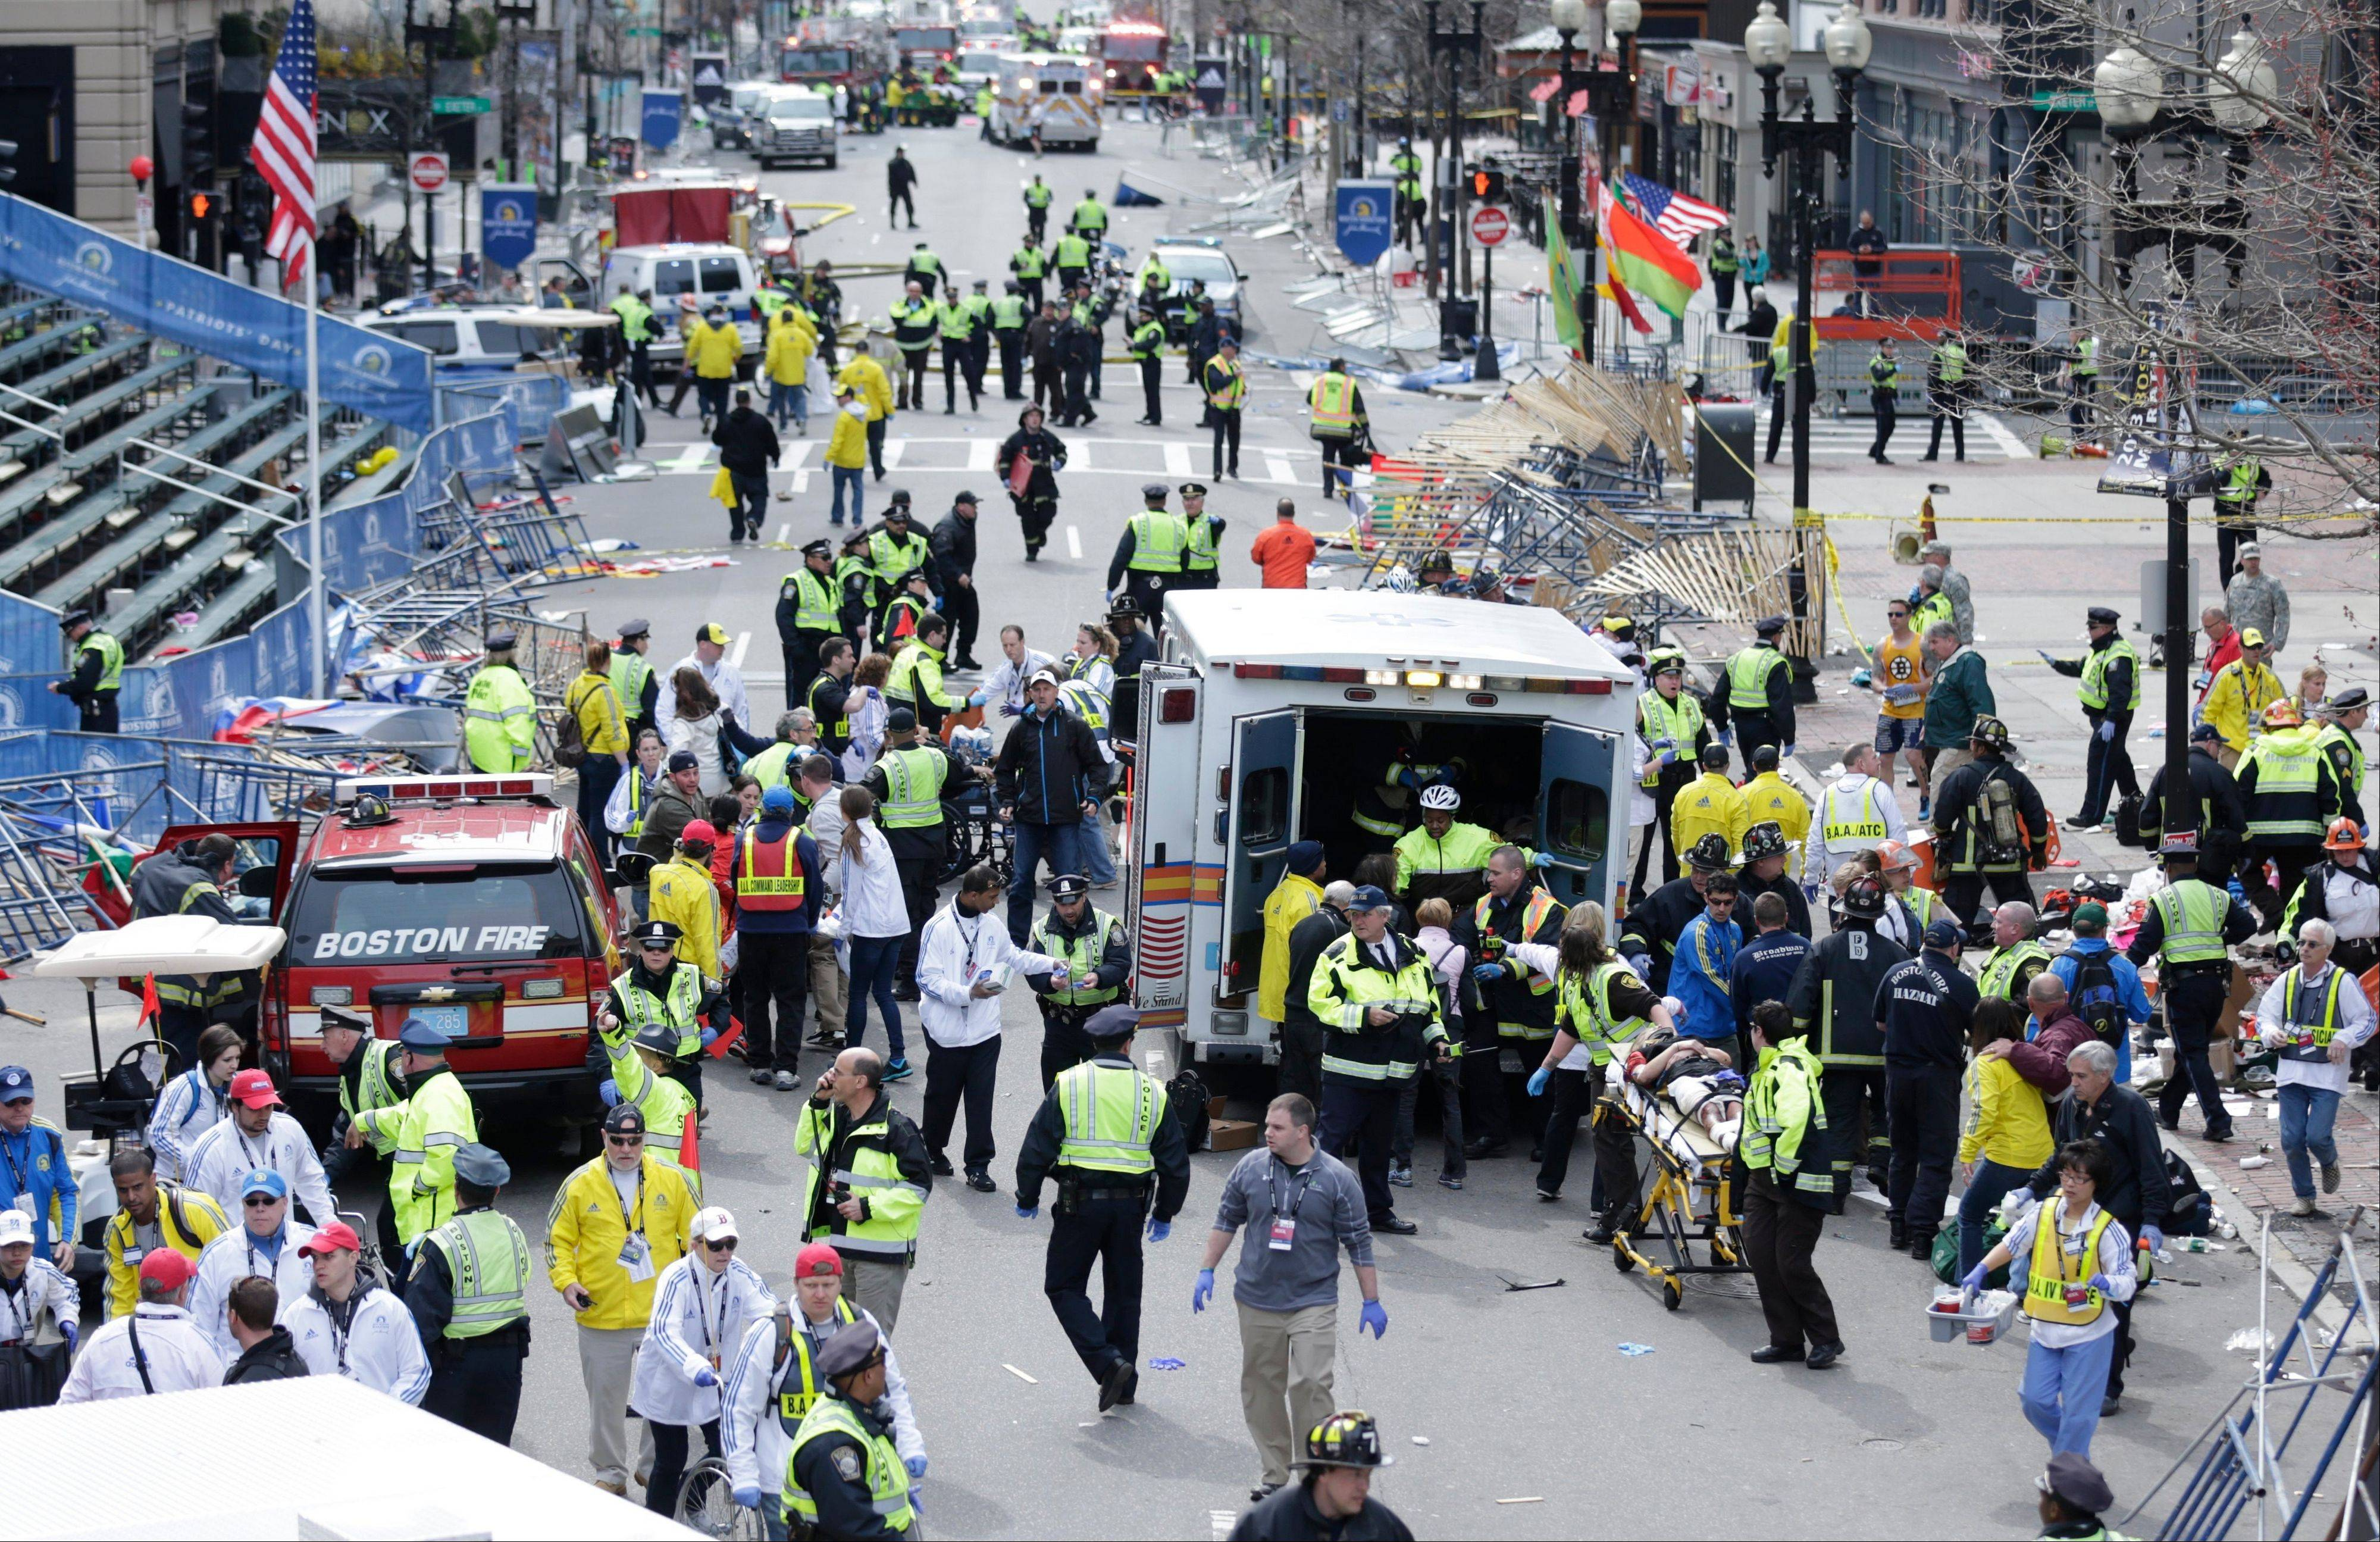 Medical workers help injured people at the finish line of the 2013 Boston Marathon after the explosions in Boston yesterday.